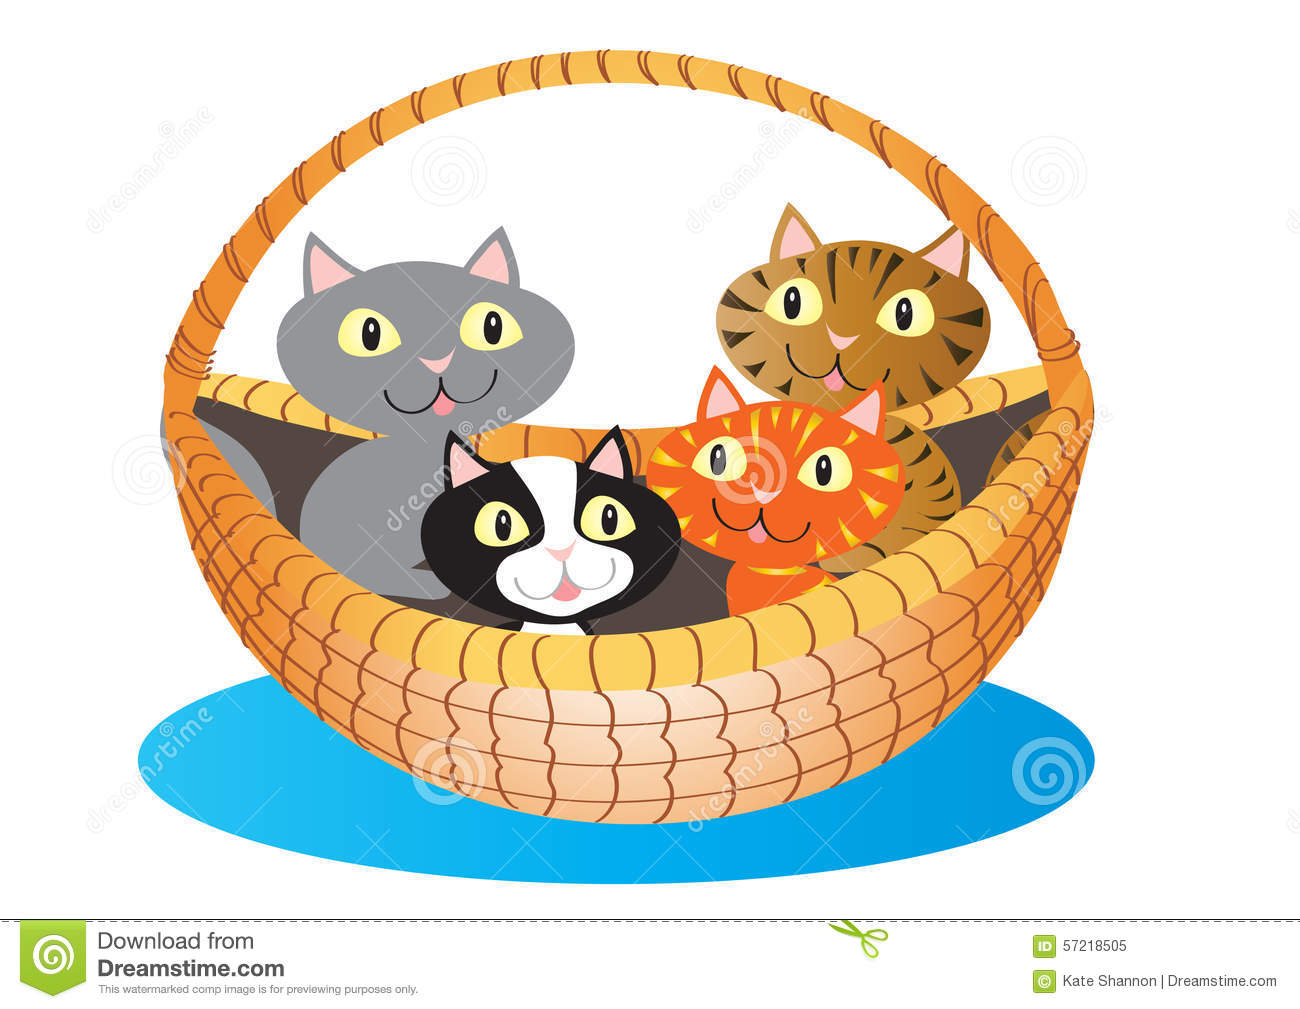 Cat Basket Clipart : A basket of cute kittens stock vector image